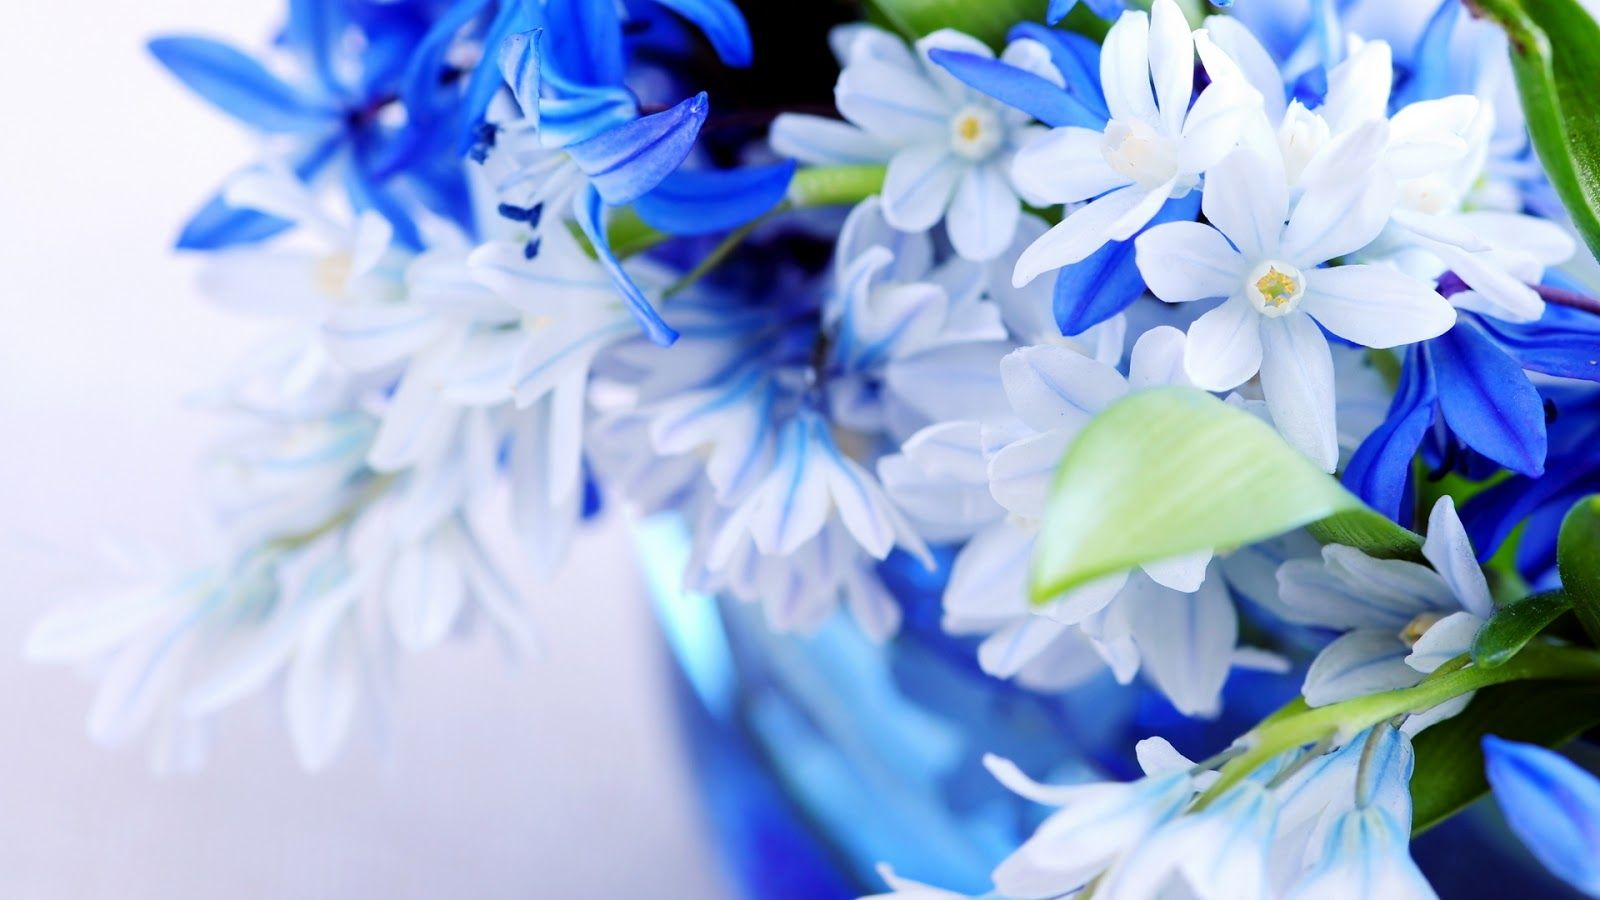 flowers for flower lovers.: beautiful flowers desktop wallpapers